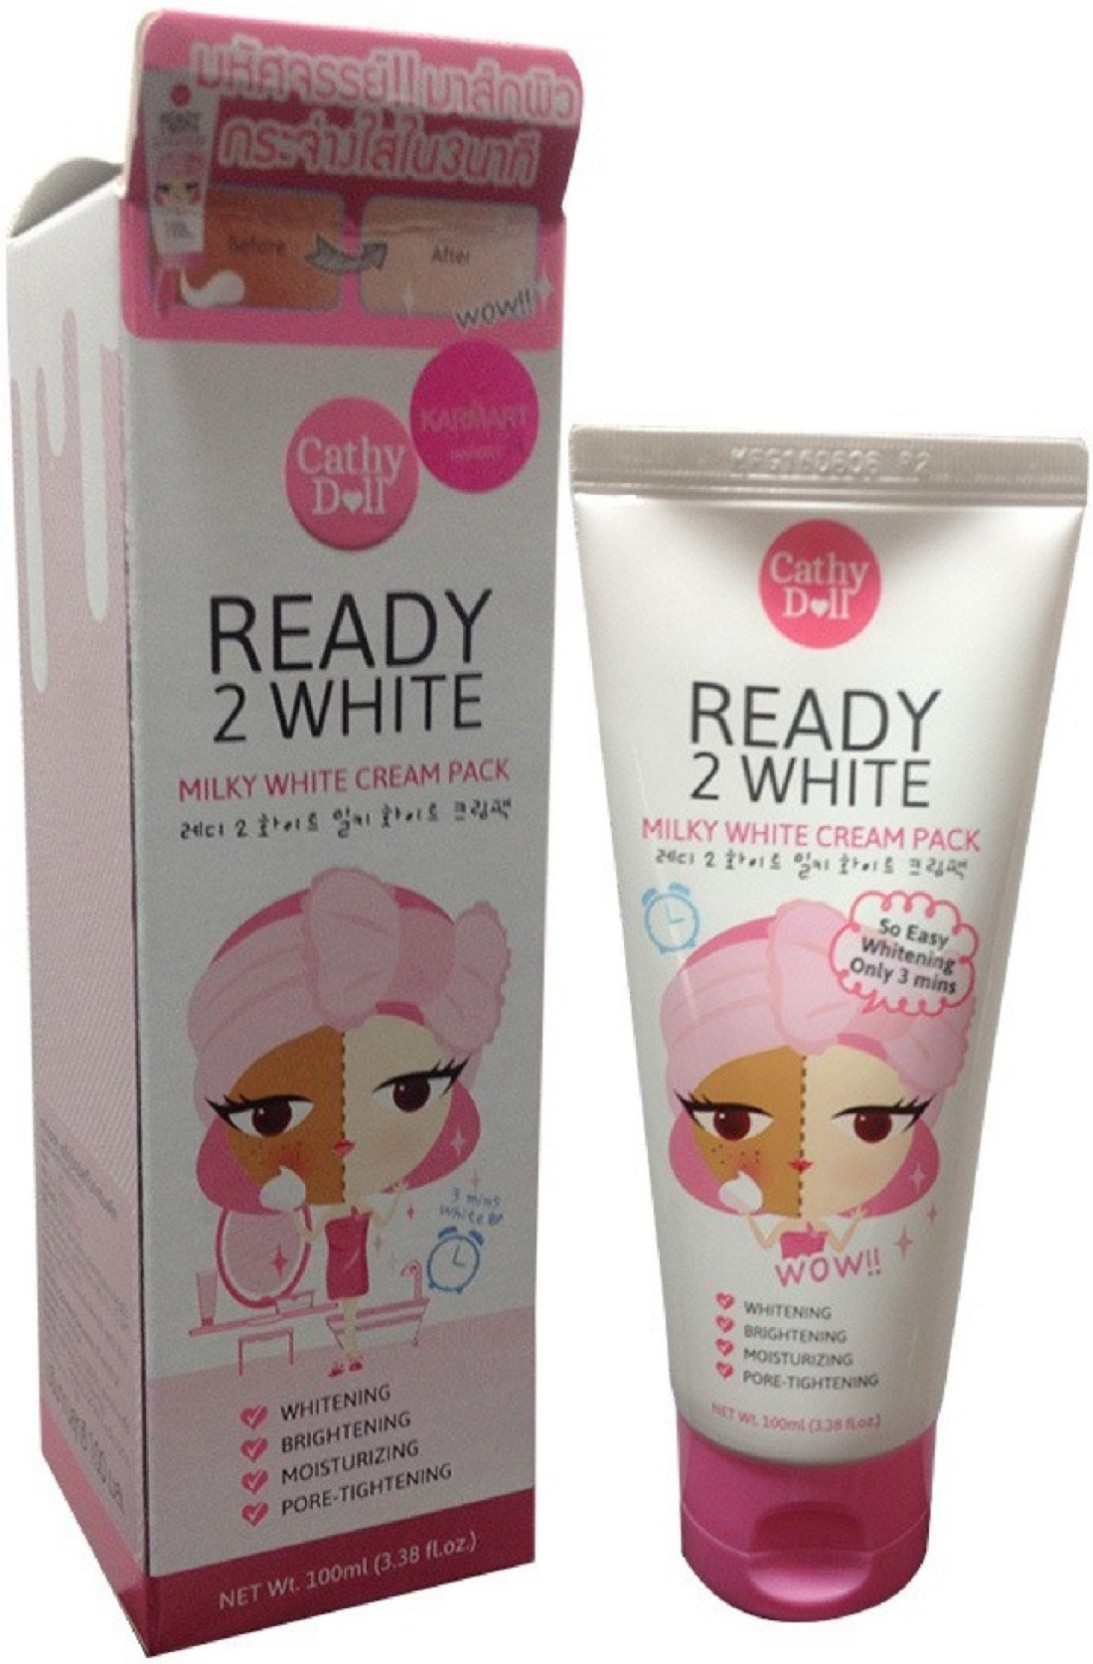 Cathy Doll Ready 2 White Milky Cream Pack Price In India Whitener Body Lotion 150ml Home